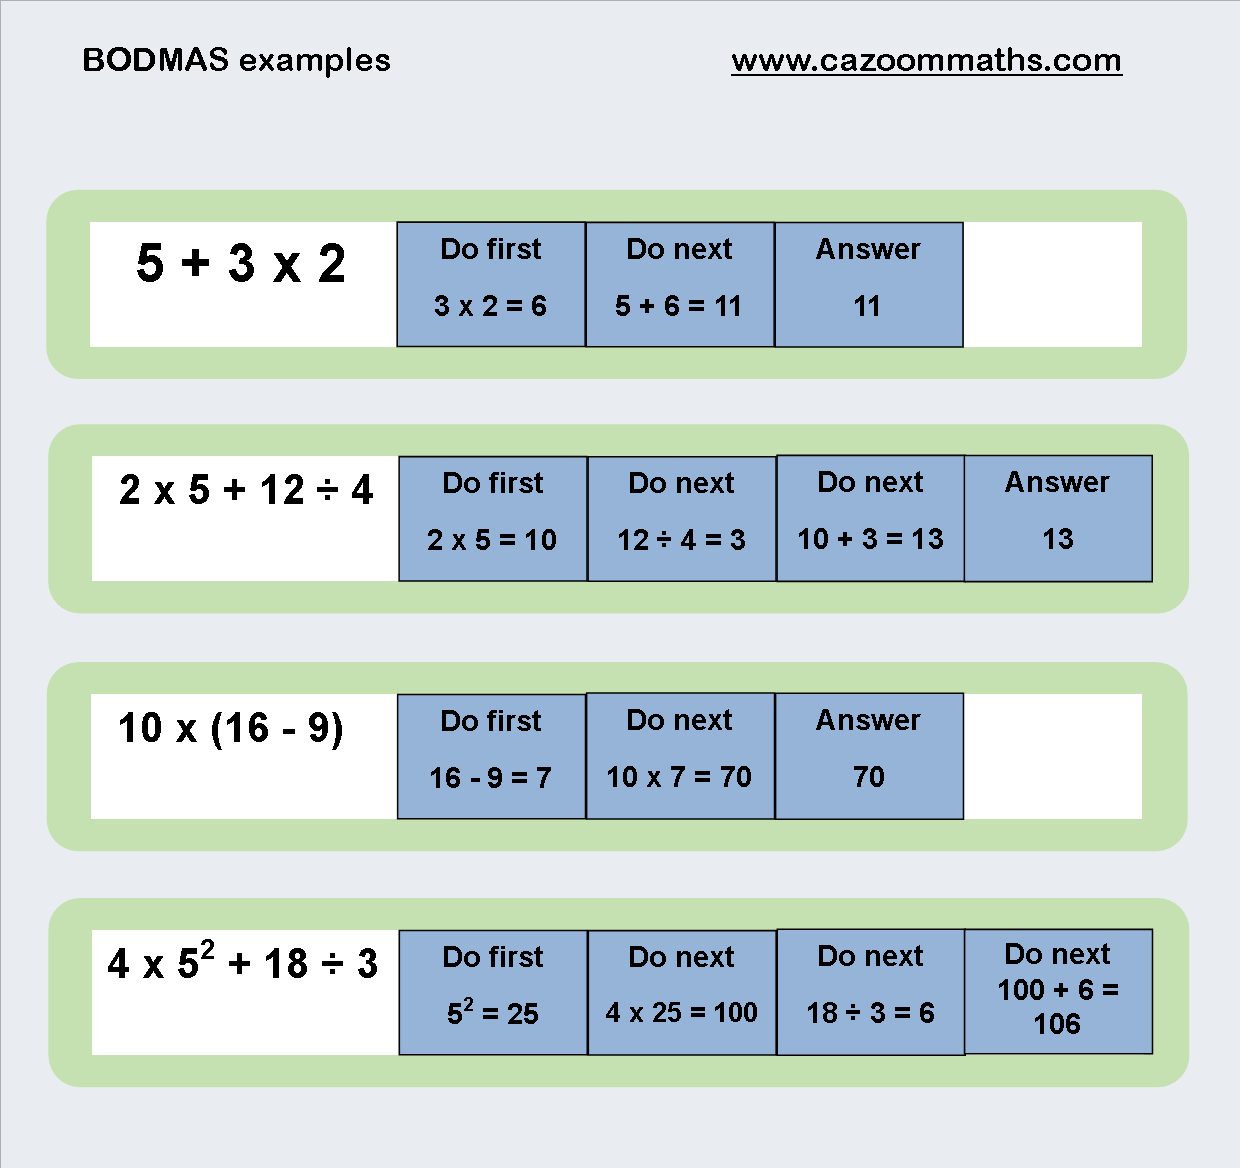 Examples Of Bodmas In Maths